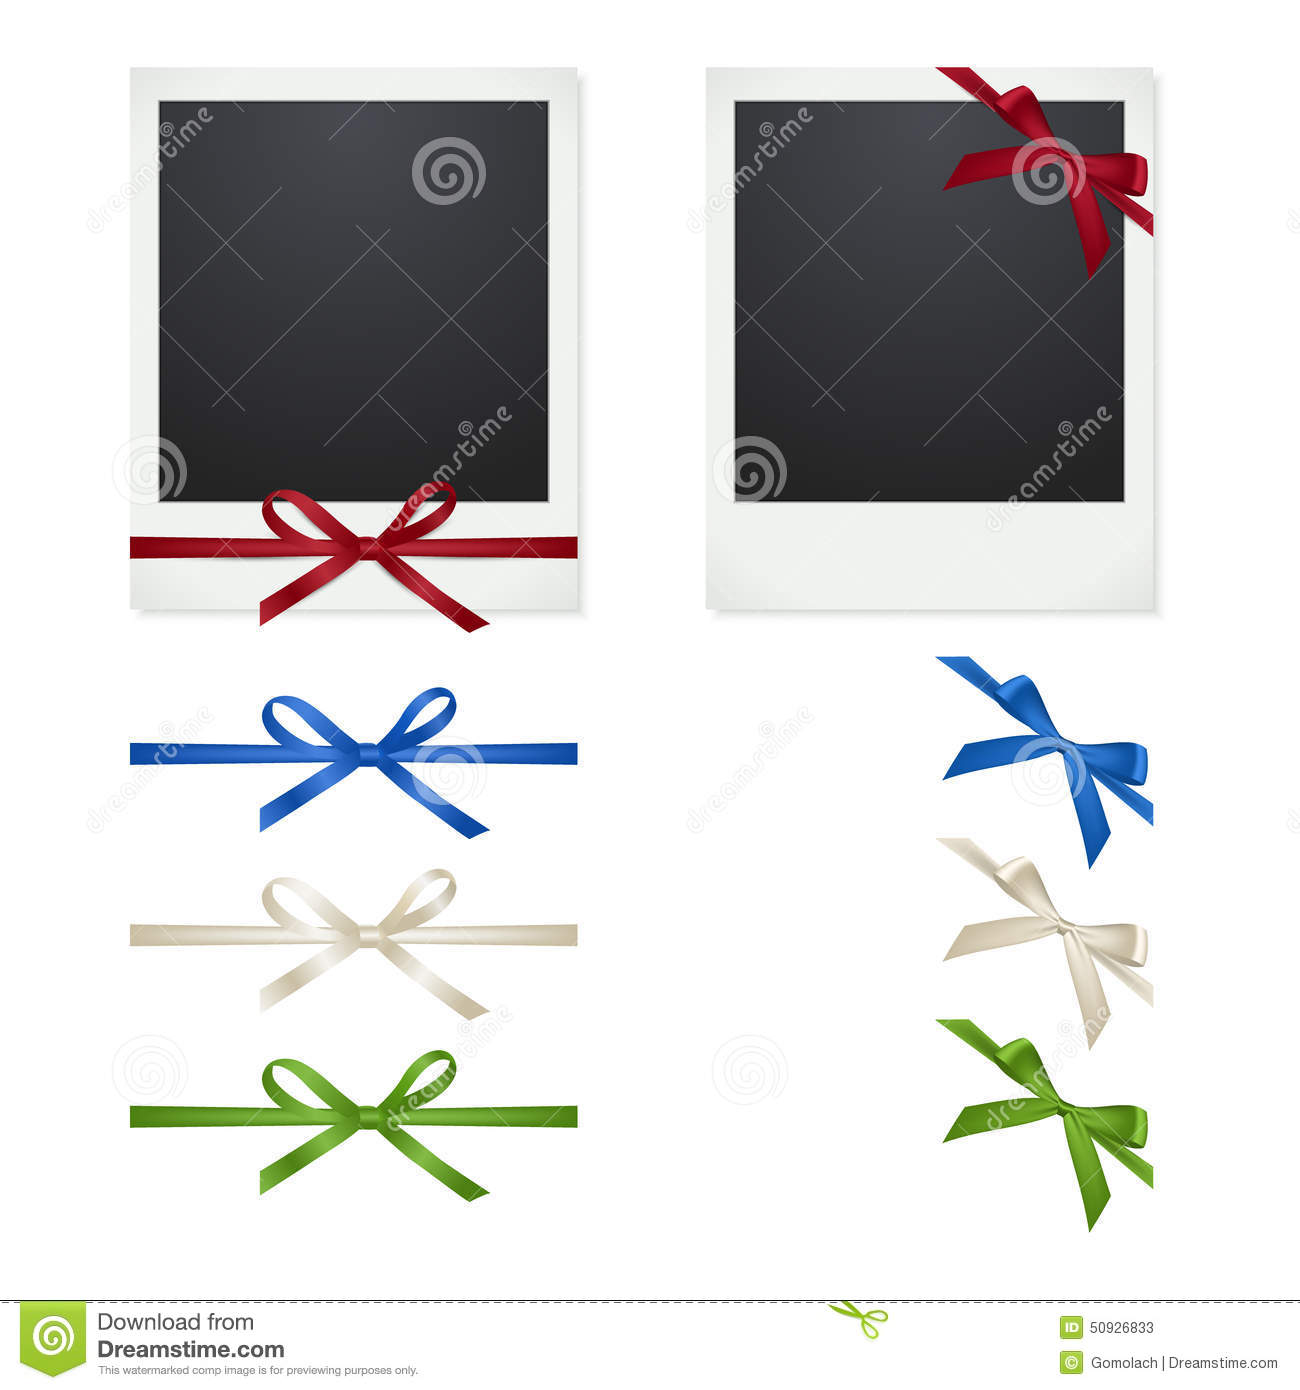 Awesome Frames With Bows Festooning - Ideas de Marcos - lamegapromo.info